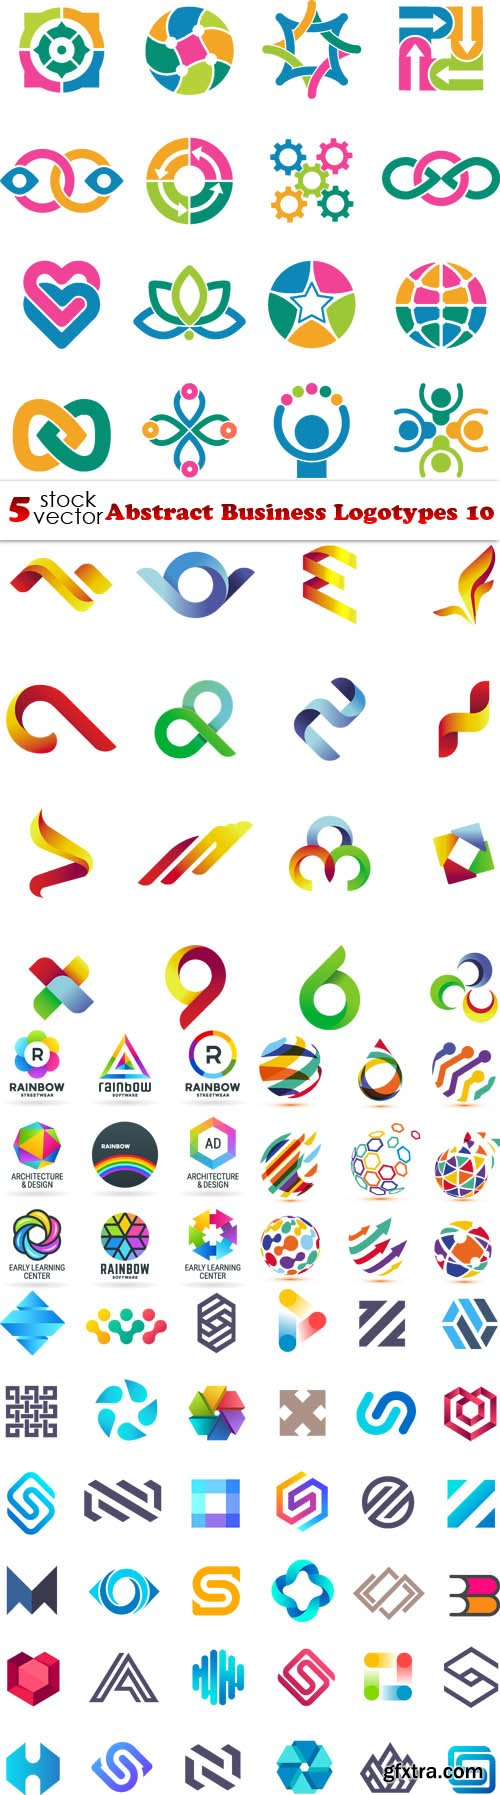 Vectors - Abstract Business Logotypes 100